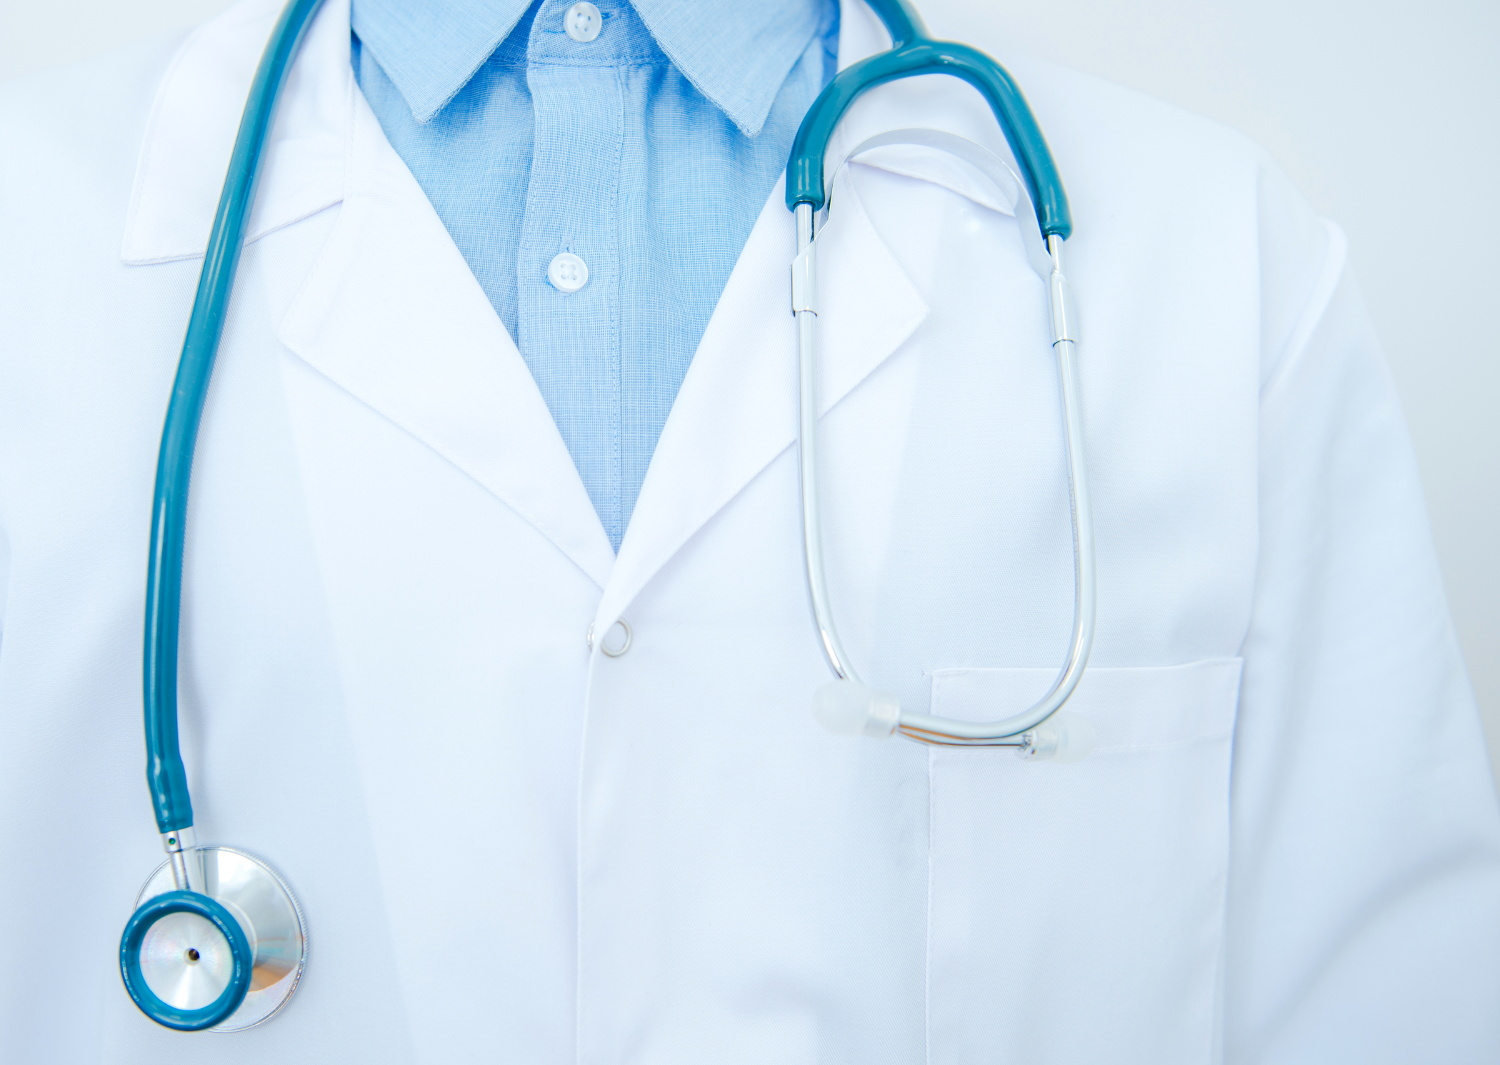 Doctor health and medical insurance premiums high deductible high maximum out of pocket plans monthly budget and expenses